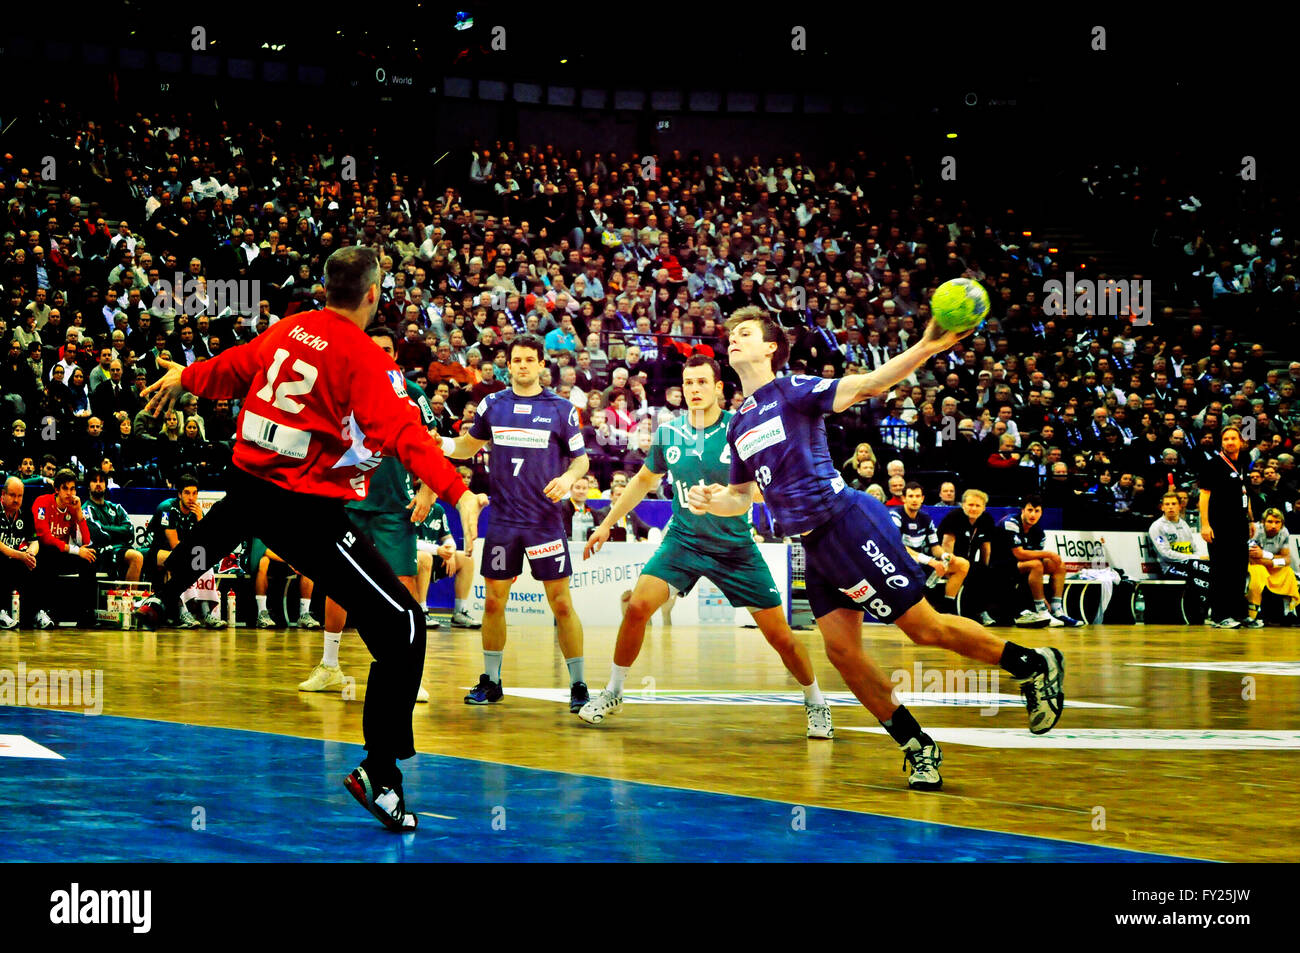 hsv handball hamburg